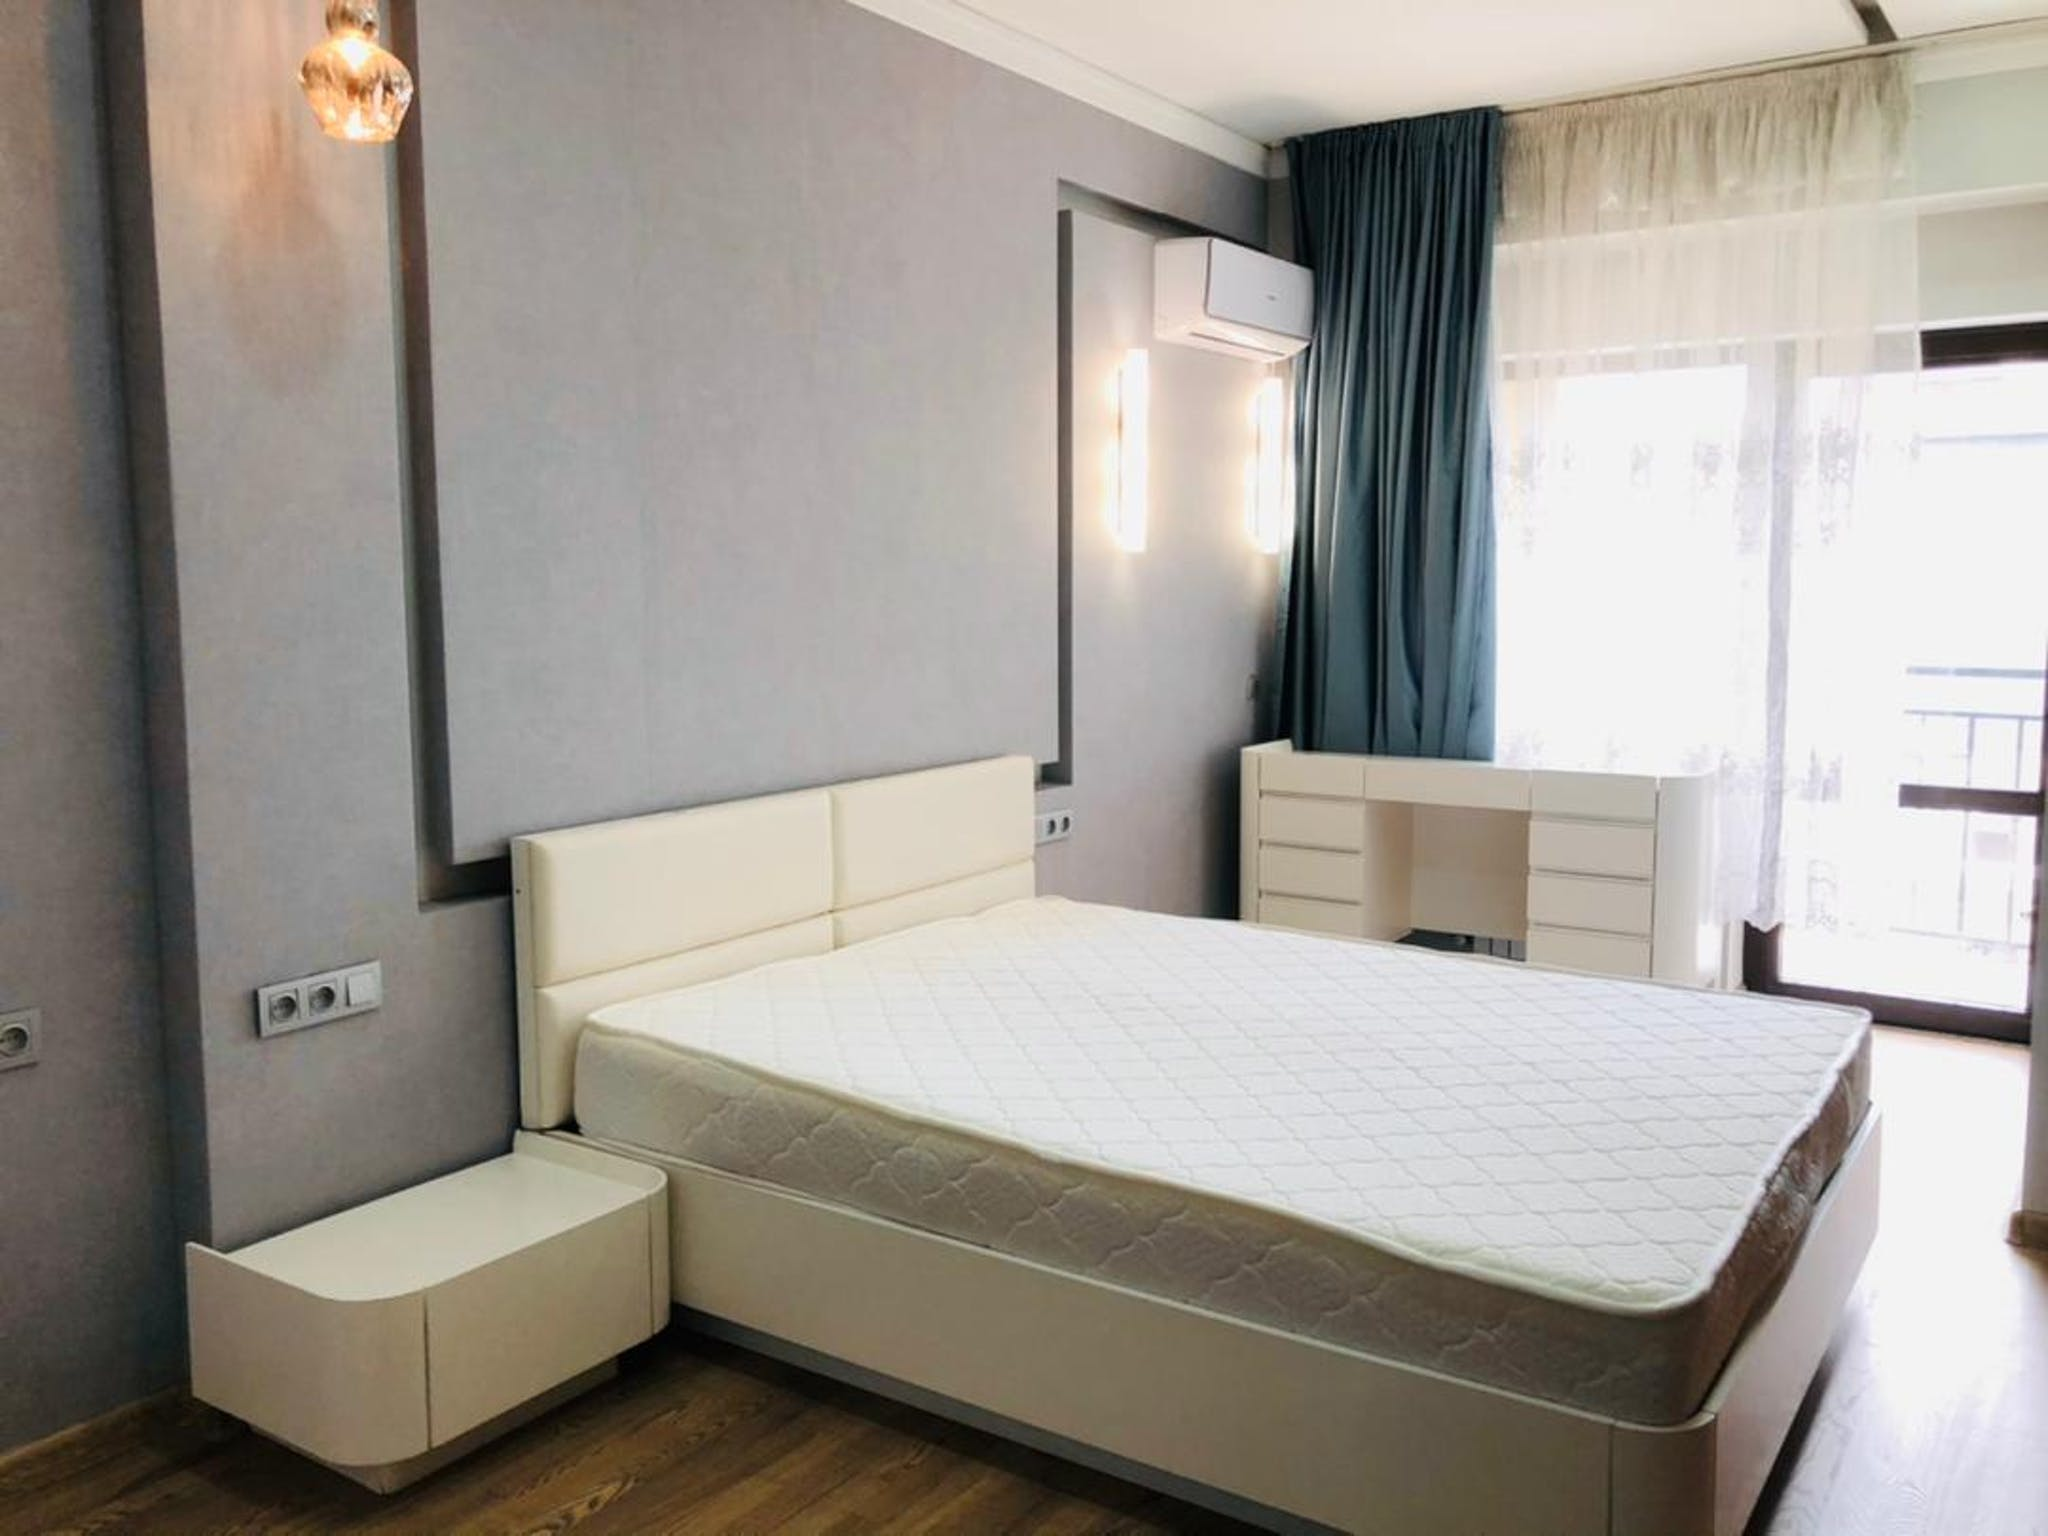 Holiday apartment Bishkek, Gogol Street, Holiday apartment for rent